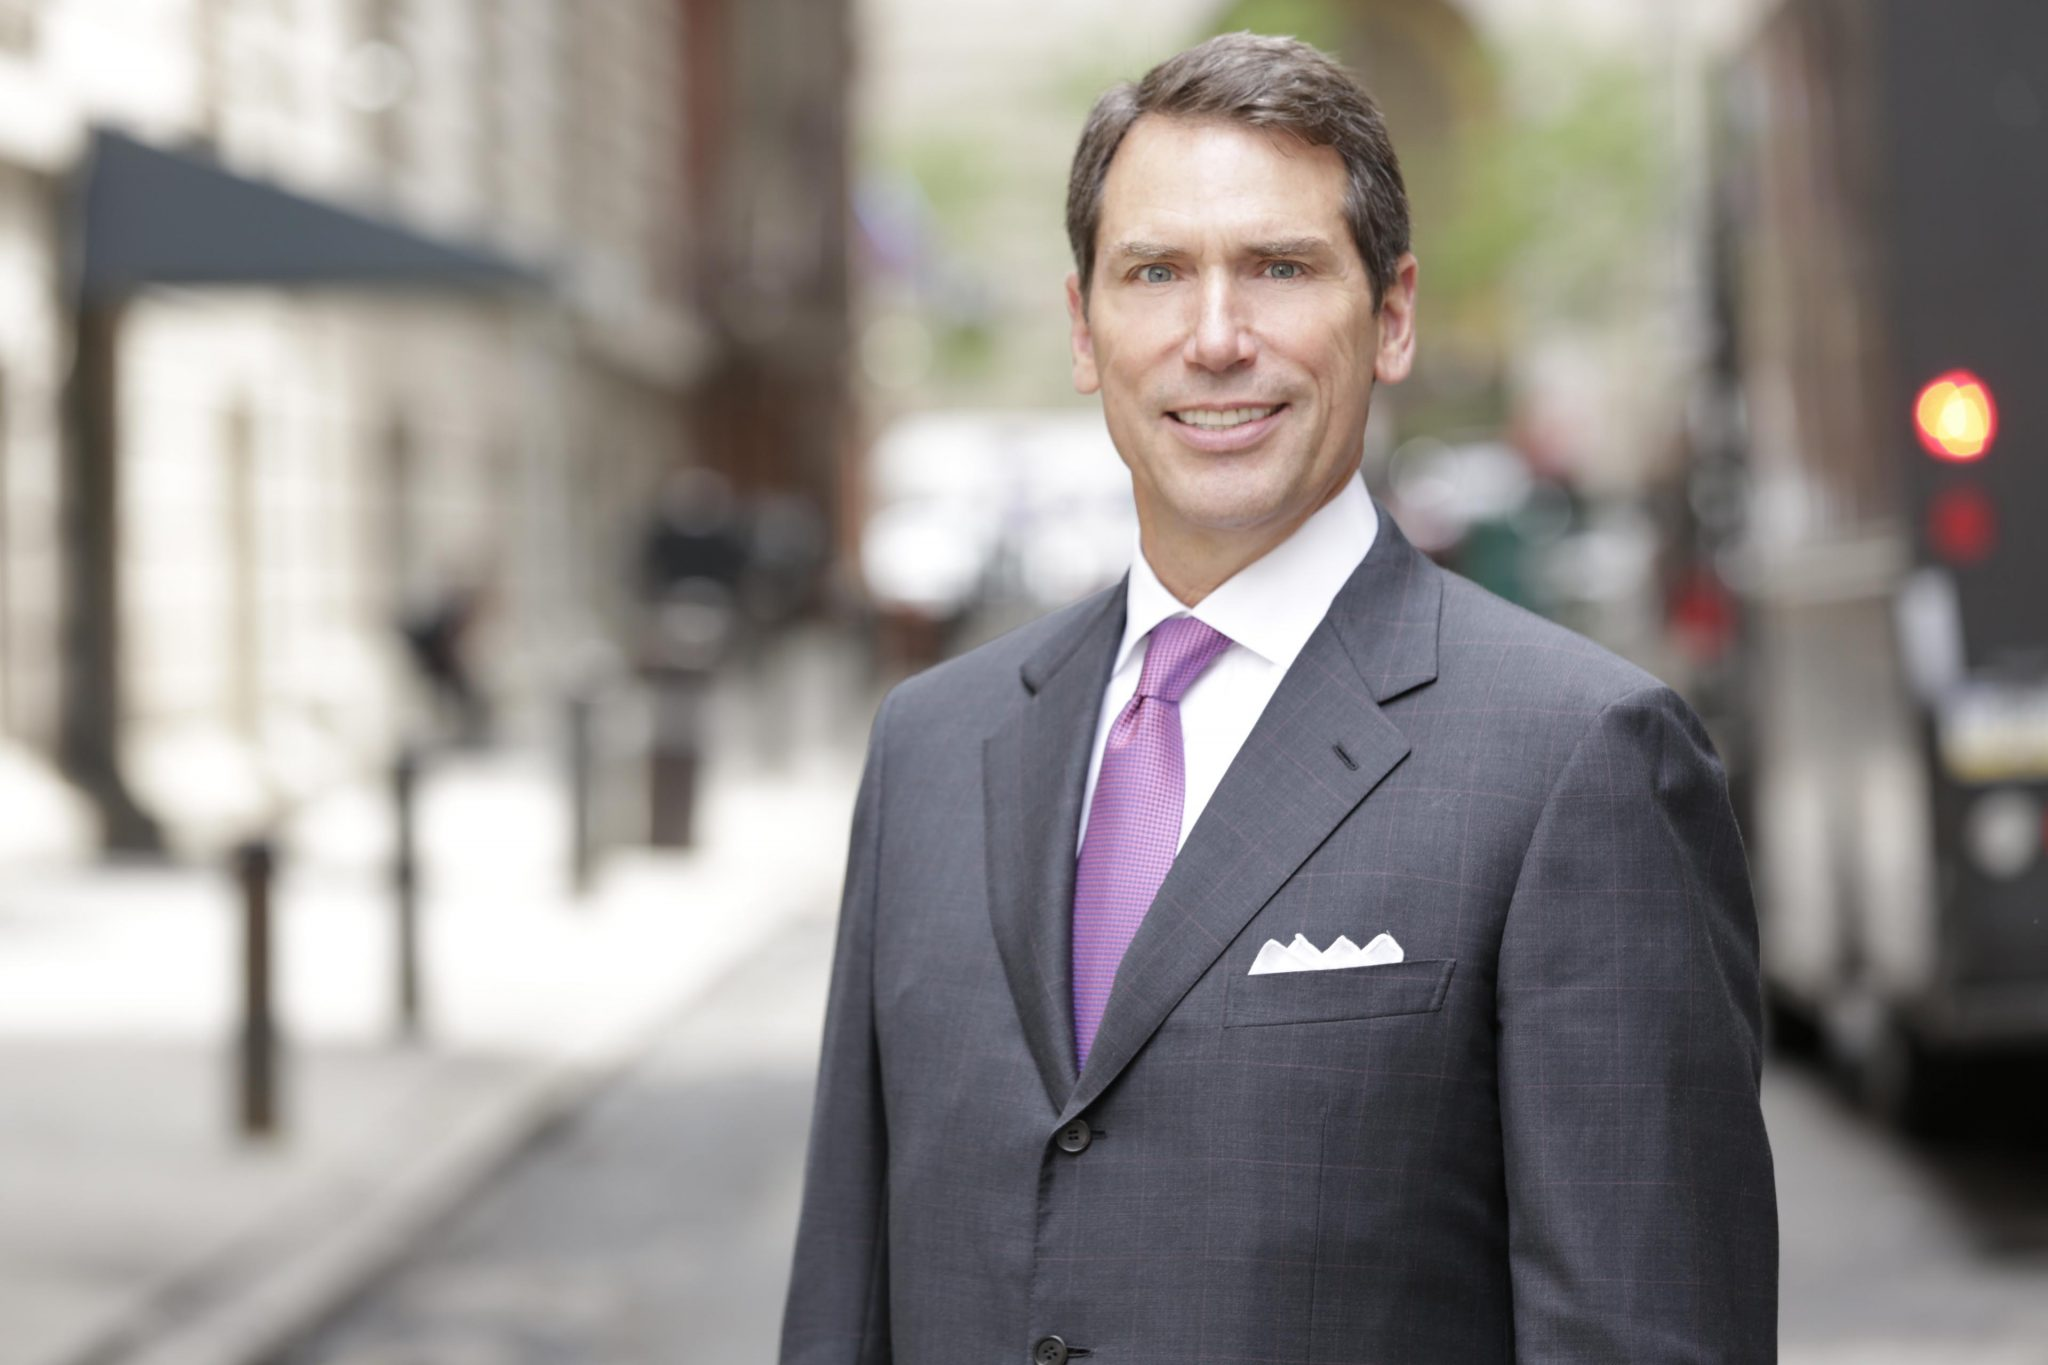 Chief Executive published Building Infrastructure by Nathan O. Rosenberg and Michael Archbold